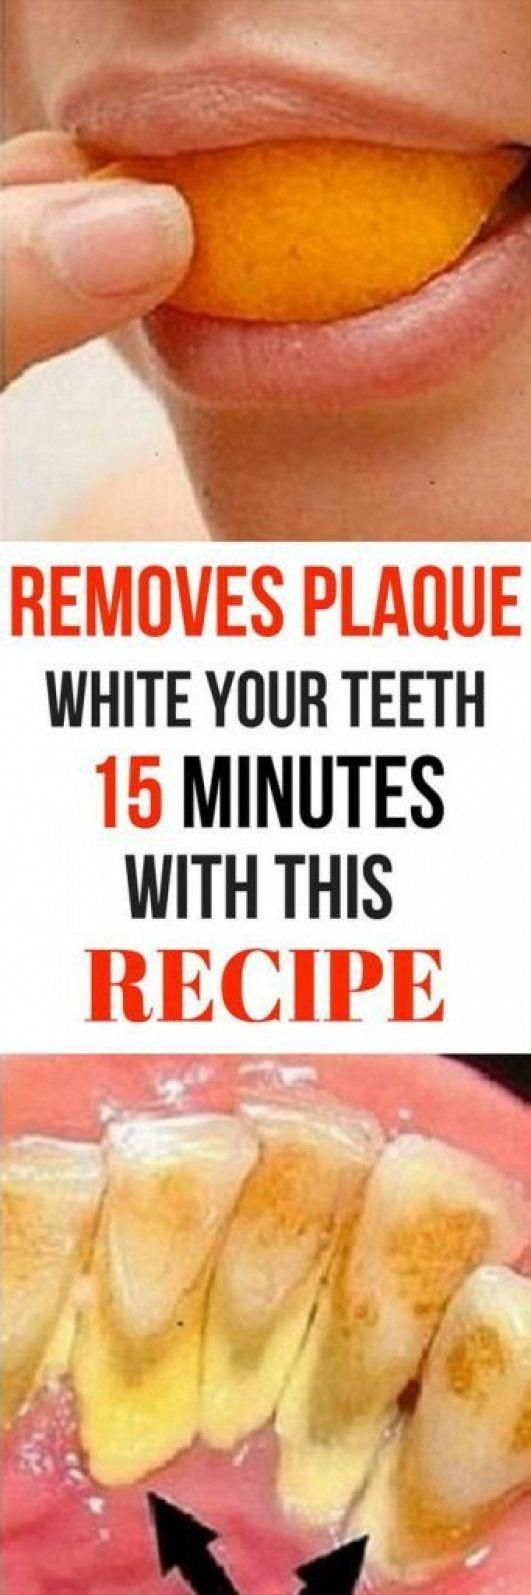 REMOVES PLAQUE AND WHITEN YOUR TEETH IN 15 MIN WITH THIS RECIPE THAT A DENTIST E…